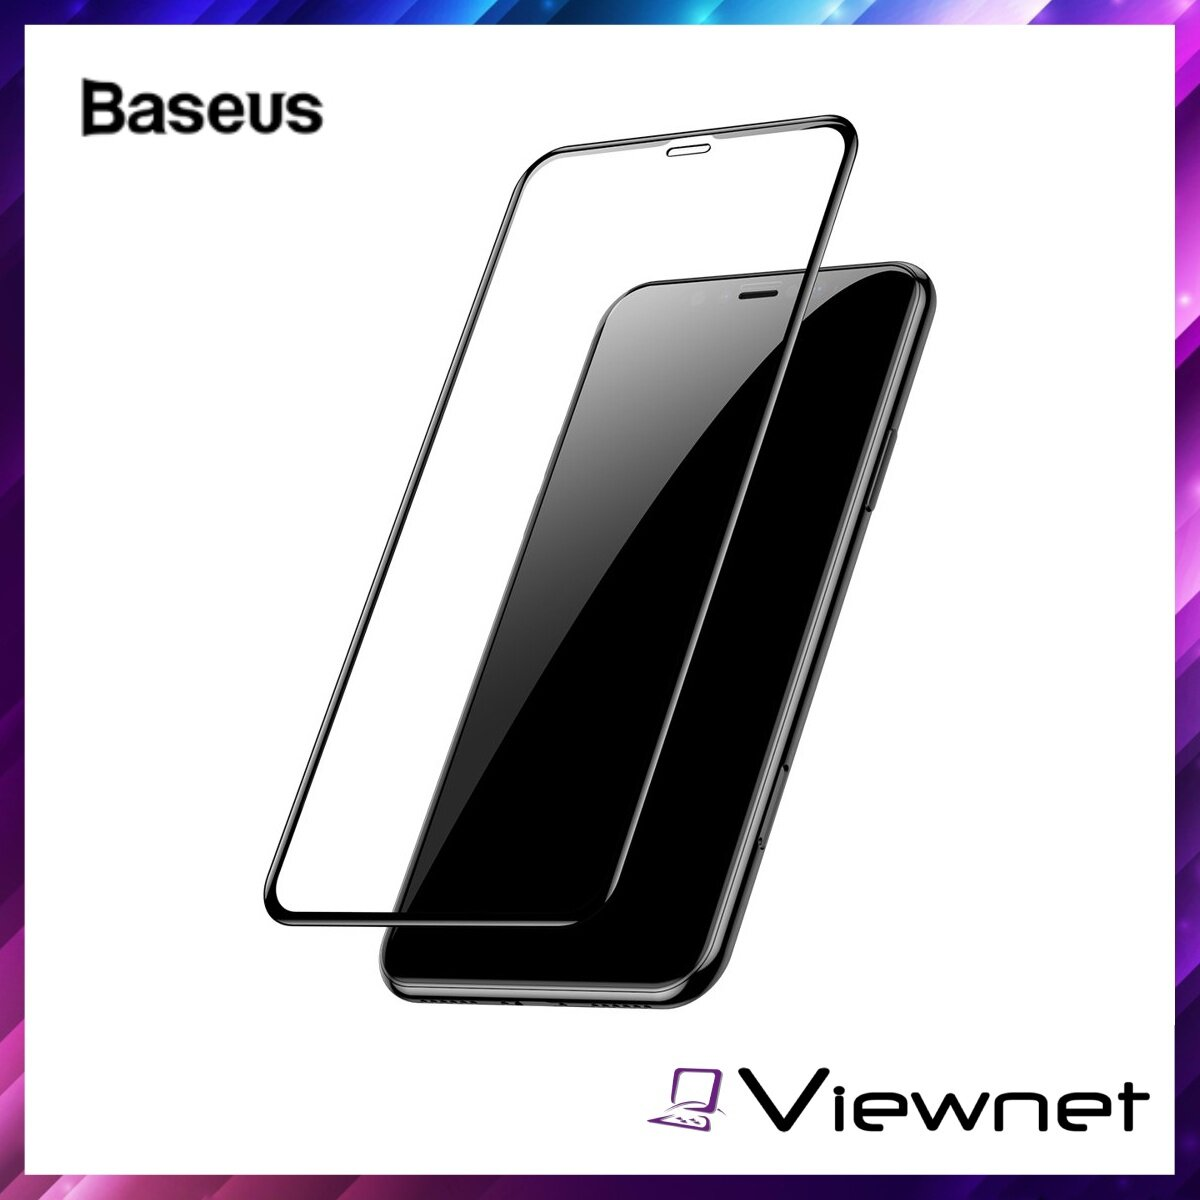 Baseus 0.3mm Full-screen and Full-glass Tempered Glass Film (2pcspack+Pasting Artifact) for iPhone XR / 11 6.1inch, Ultrathin, Tough anti-explosion structure, Oleophobic coating